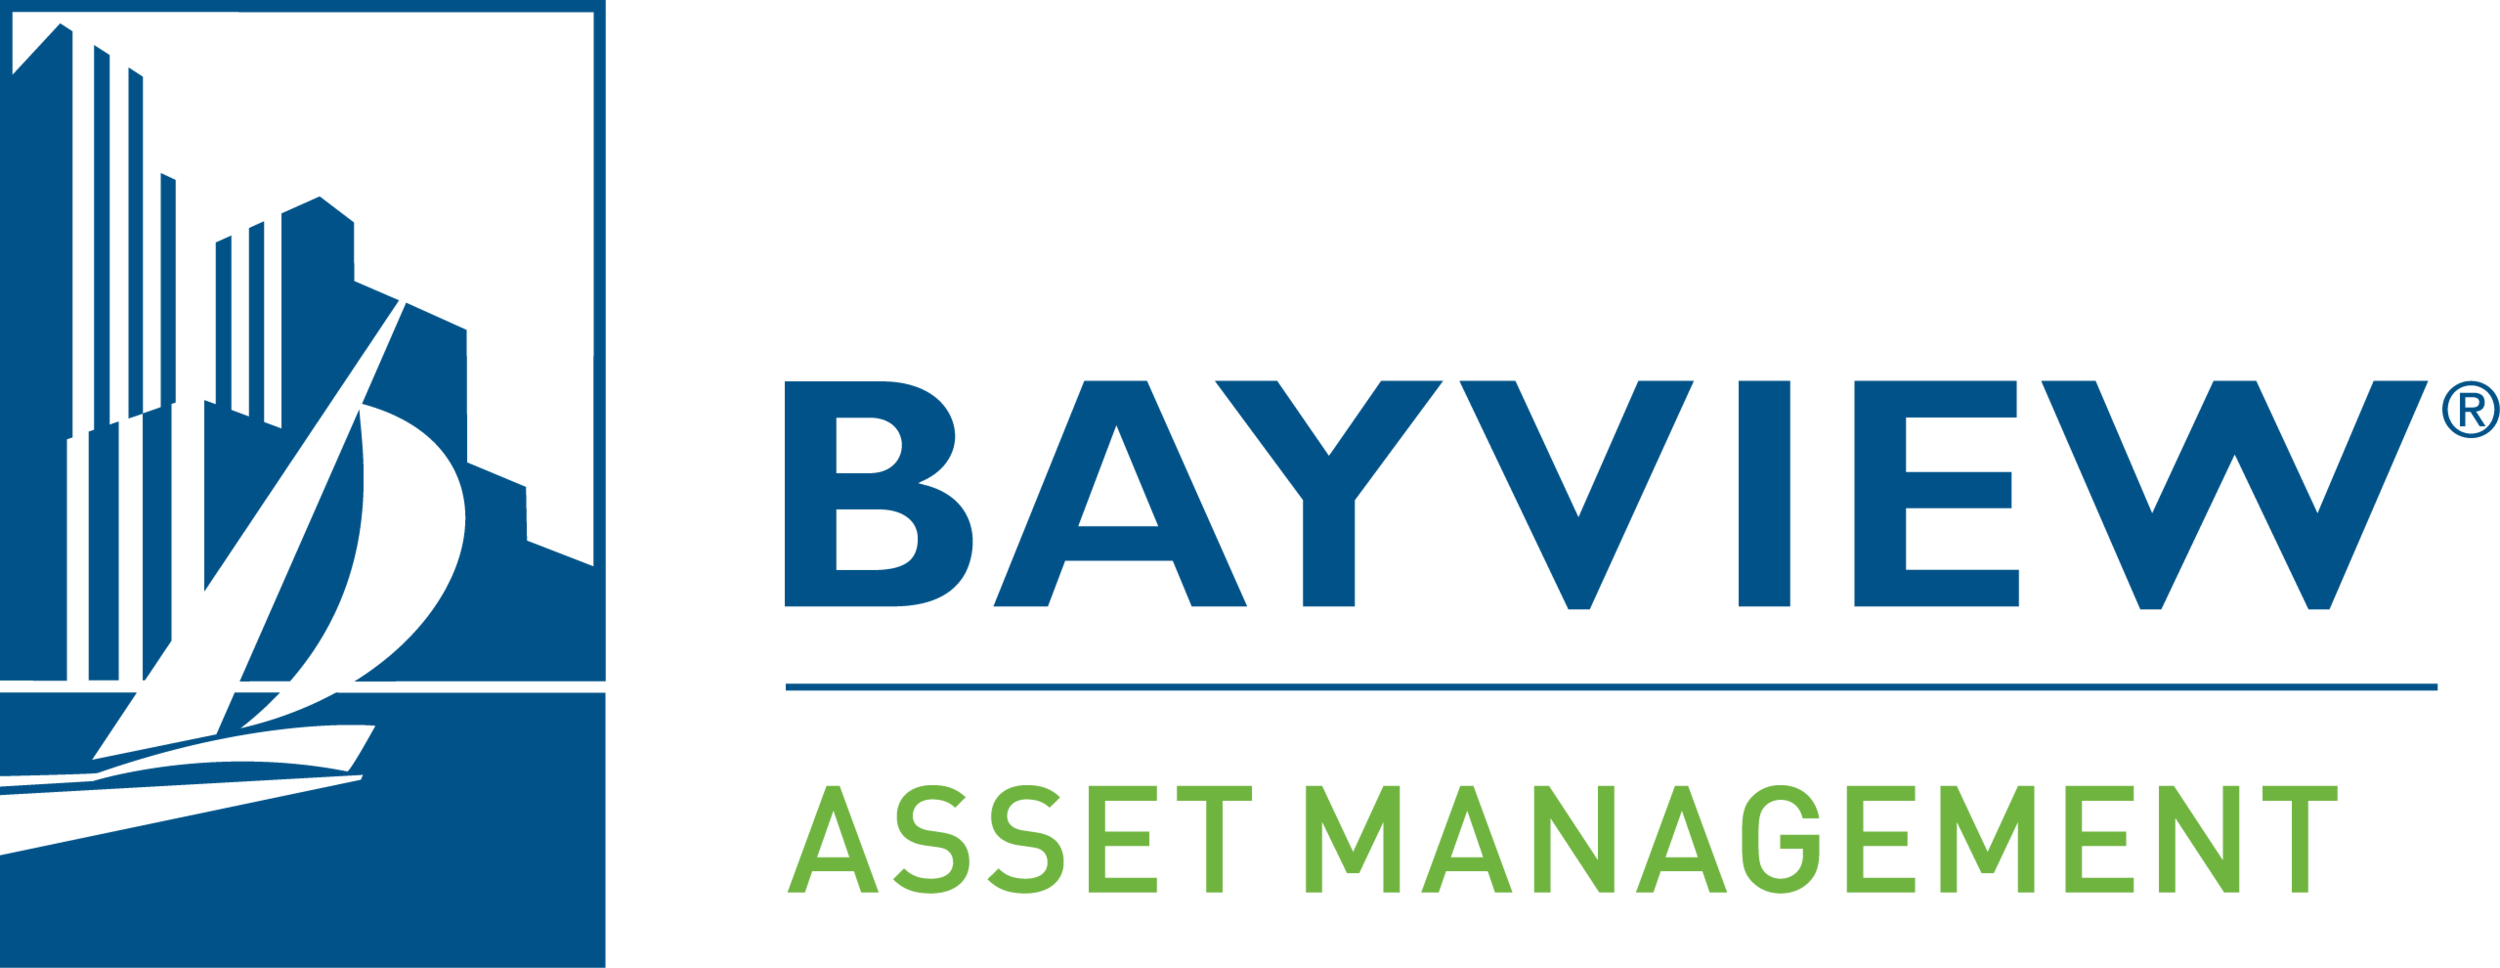 Bayview Asset Management_Logo.png